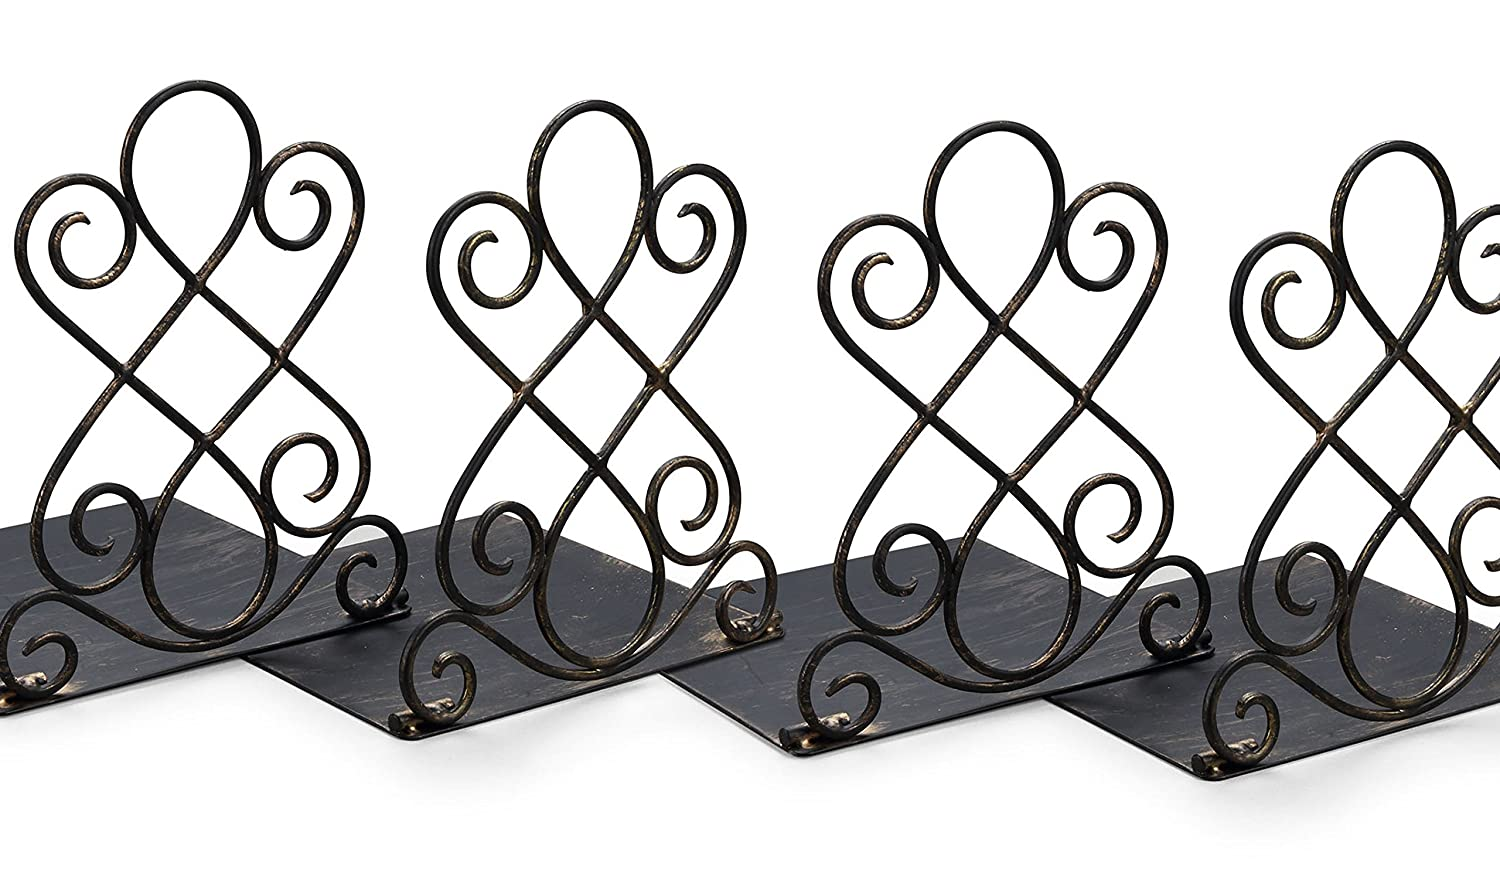 Pack of 2 NEUN WELTEN NW043 Art Bookends in Vintage Bronze Finish